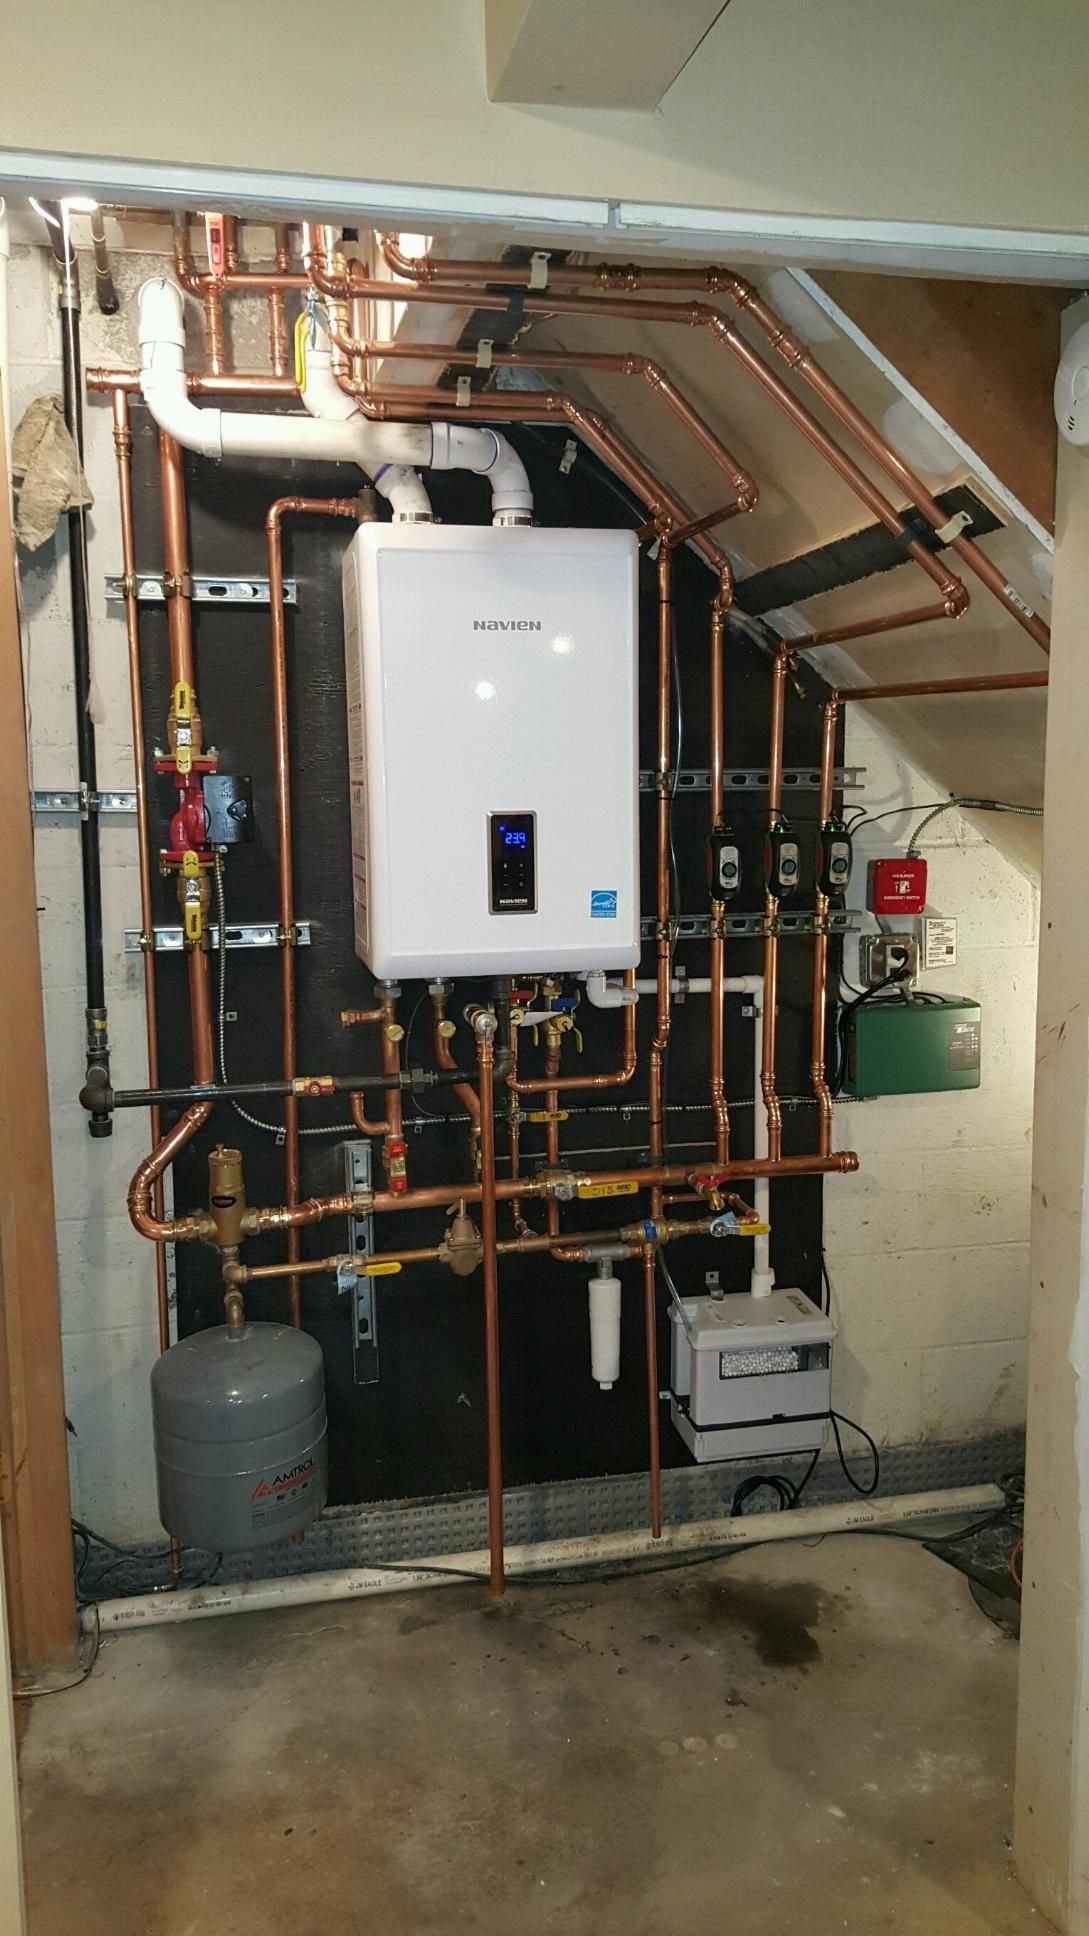 Good Work Hydronic Heating Systems Boiler Installation Home Heating Systems